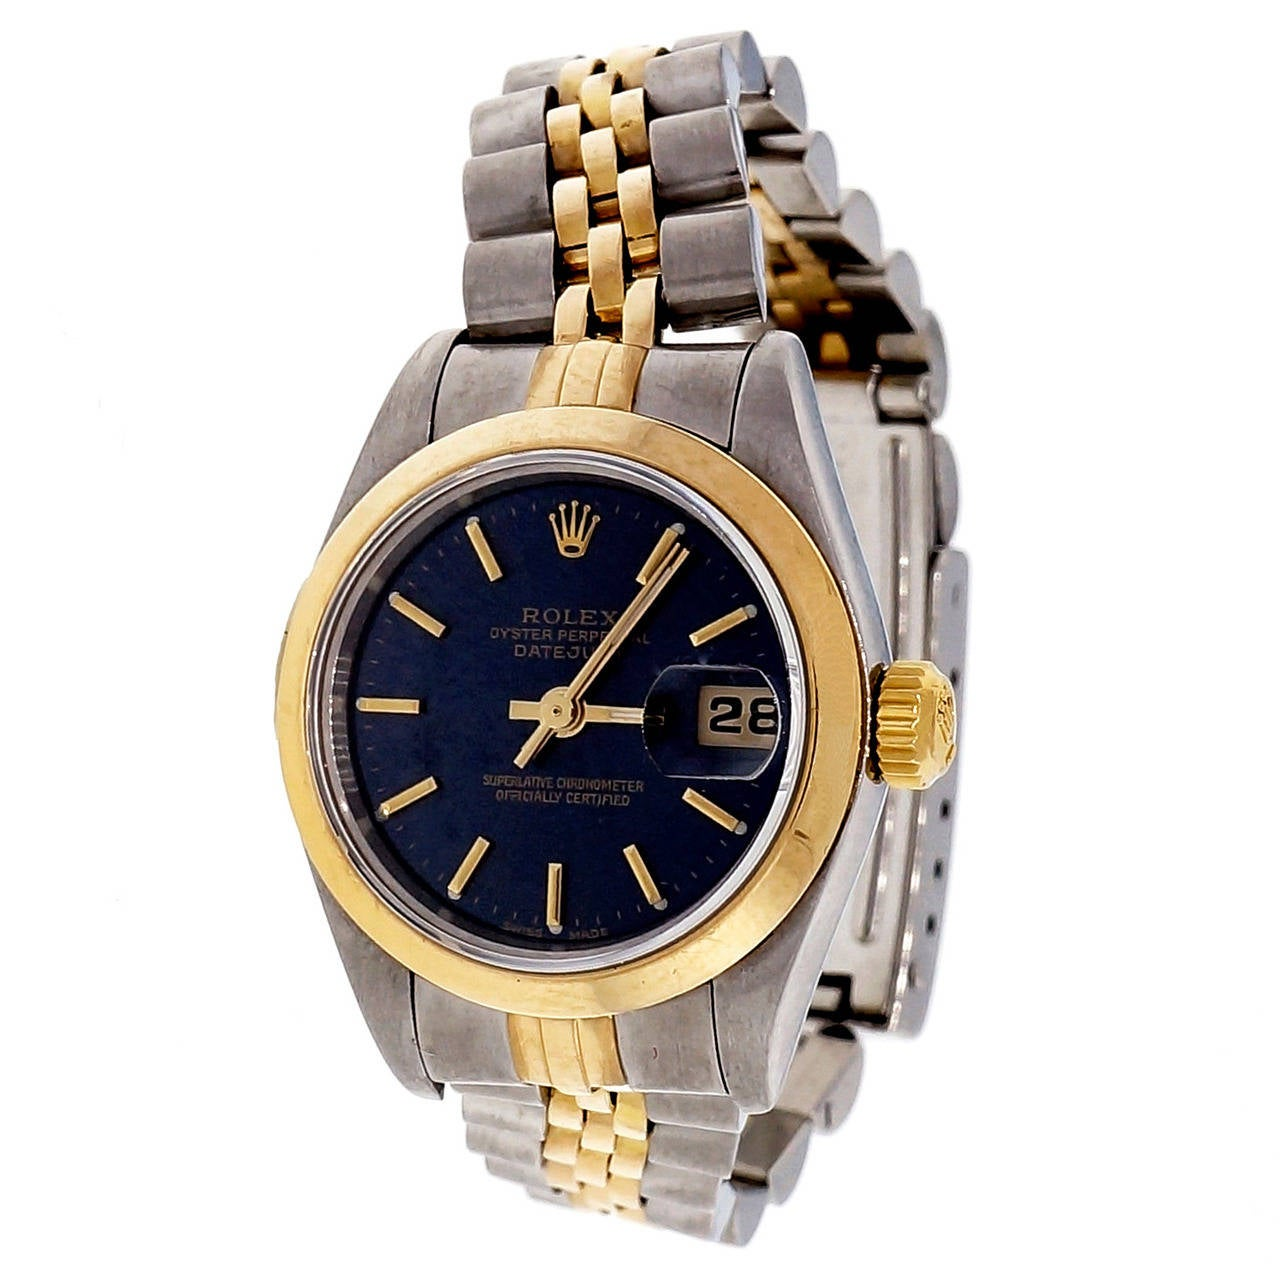 Rolex Lady's Yellow Gold Stainless Steel Datejust Wristwatch Ref 68173